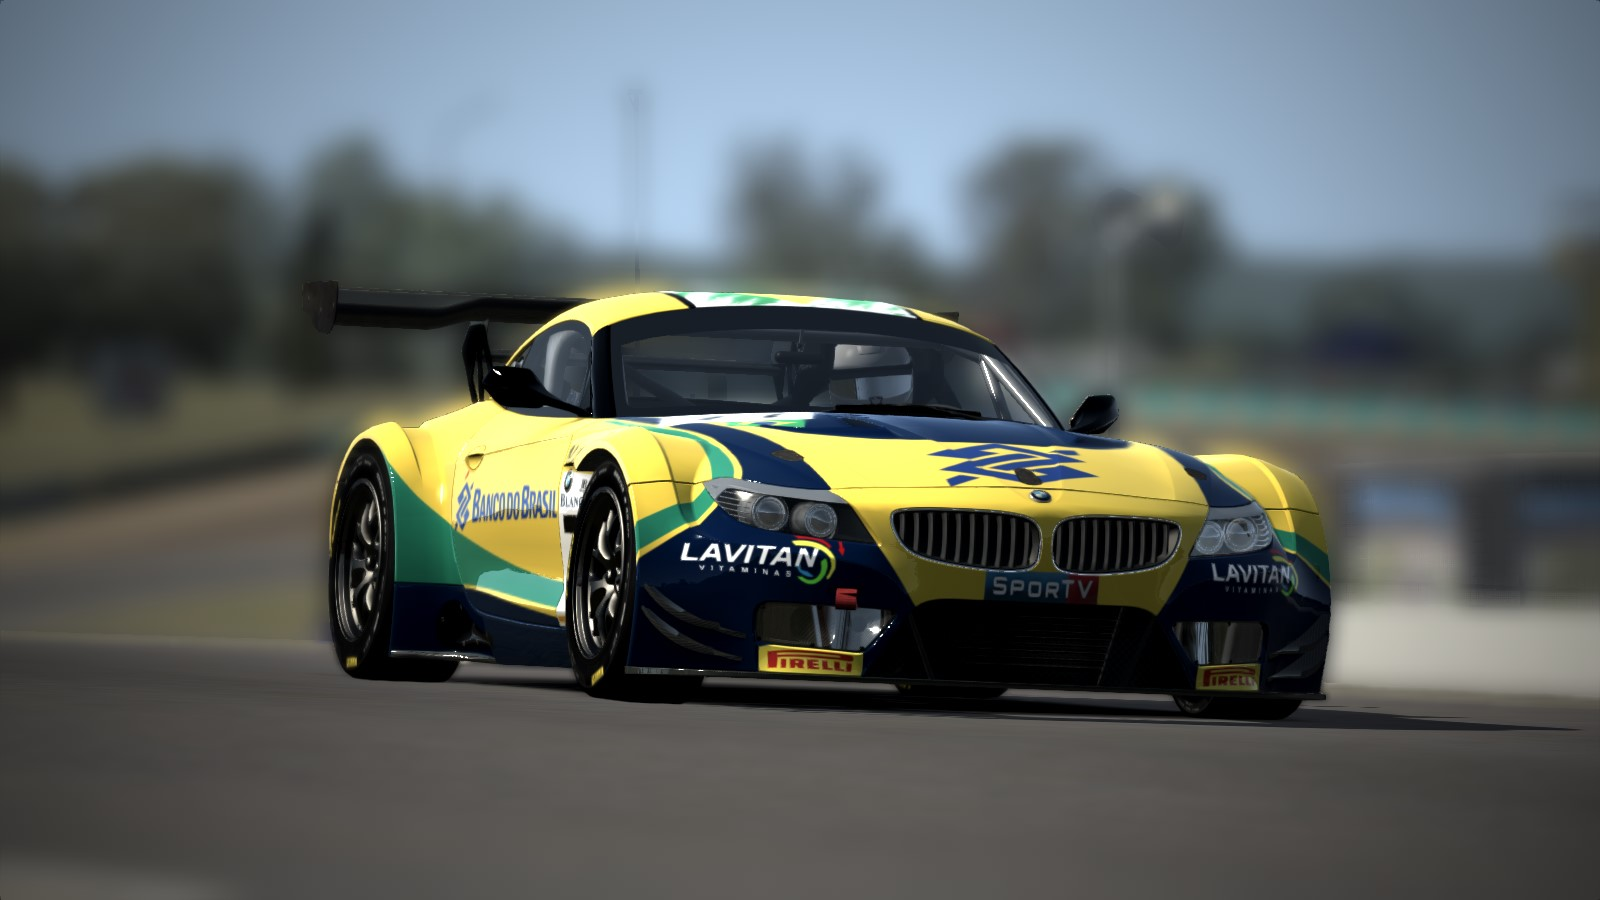 Screenshot_bmw_z4_gt3_barbagallo_12-4-115-2-50-16.jpg